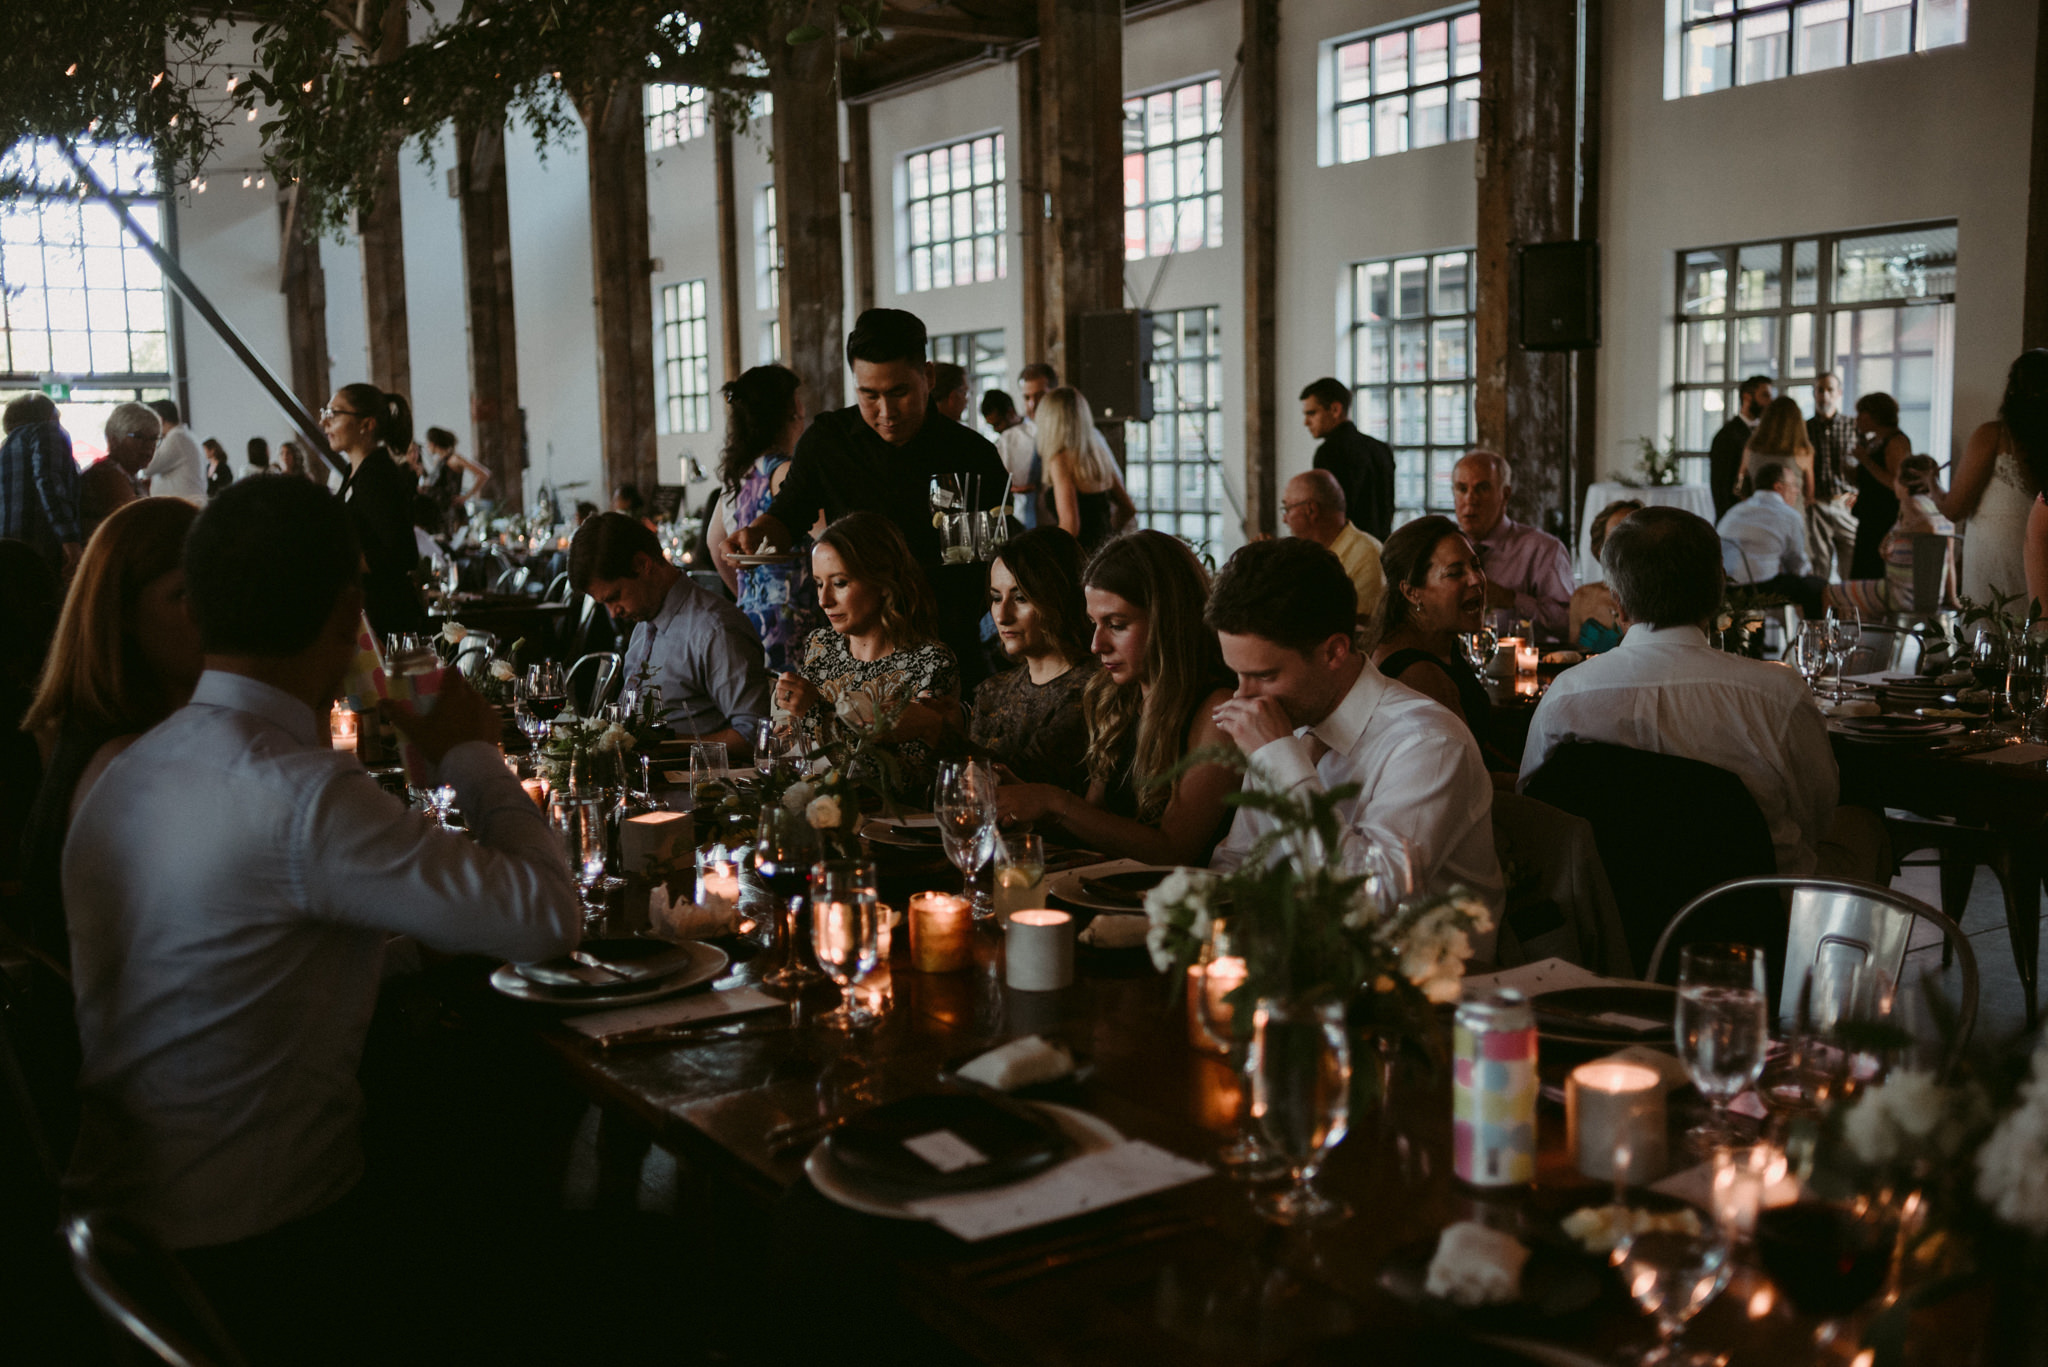 guests sitting at tables talking during wedding reception